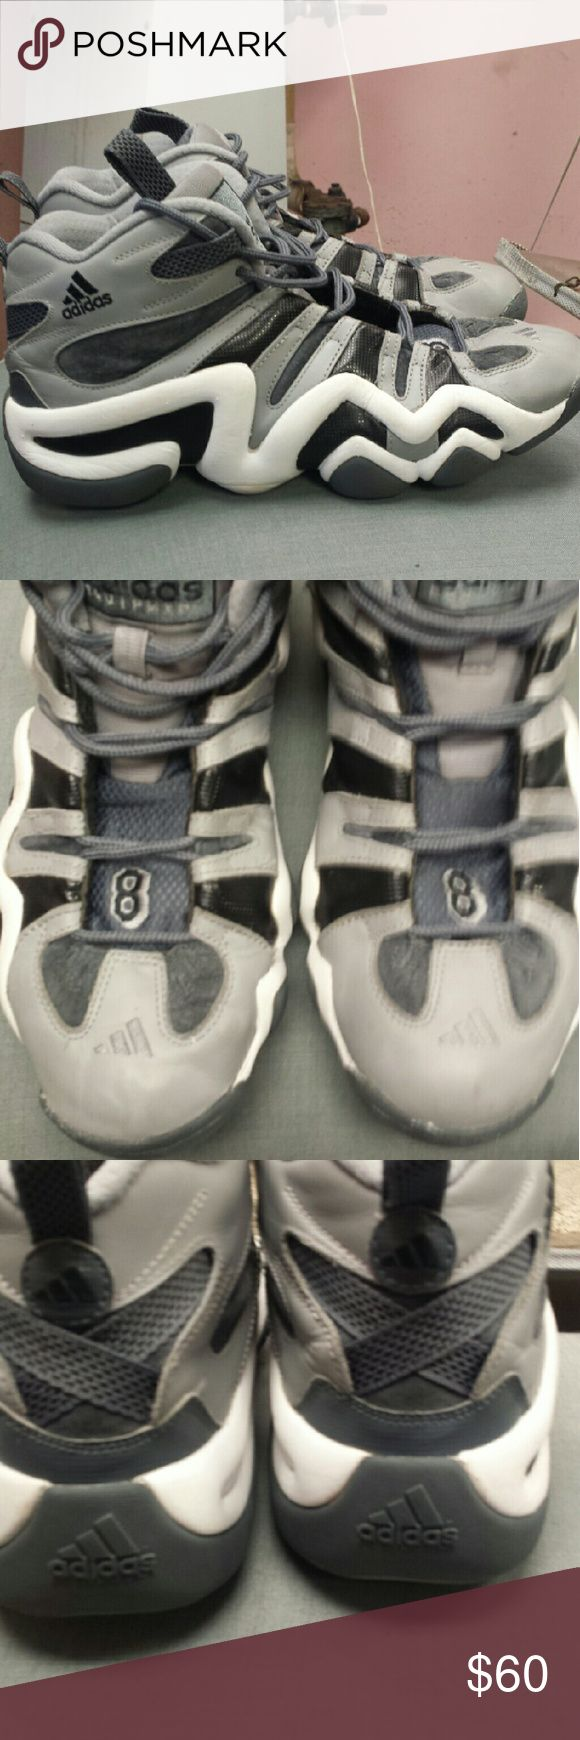 huge discount 547da 252ea ... cheap kobe bryant crazy 8 adidas shoes good condition still have a lot  of life left